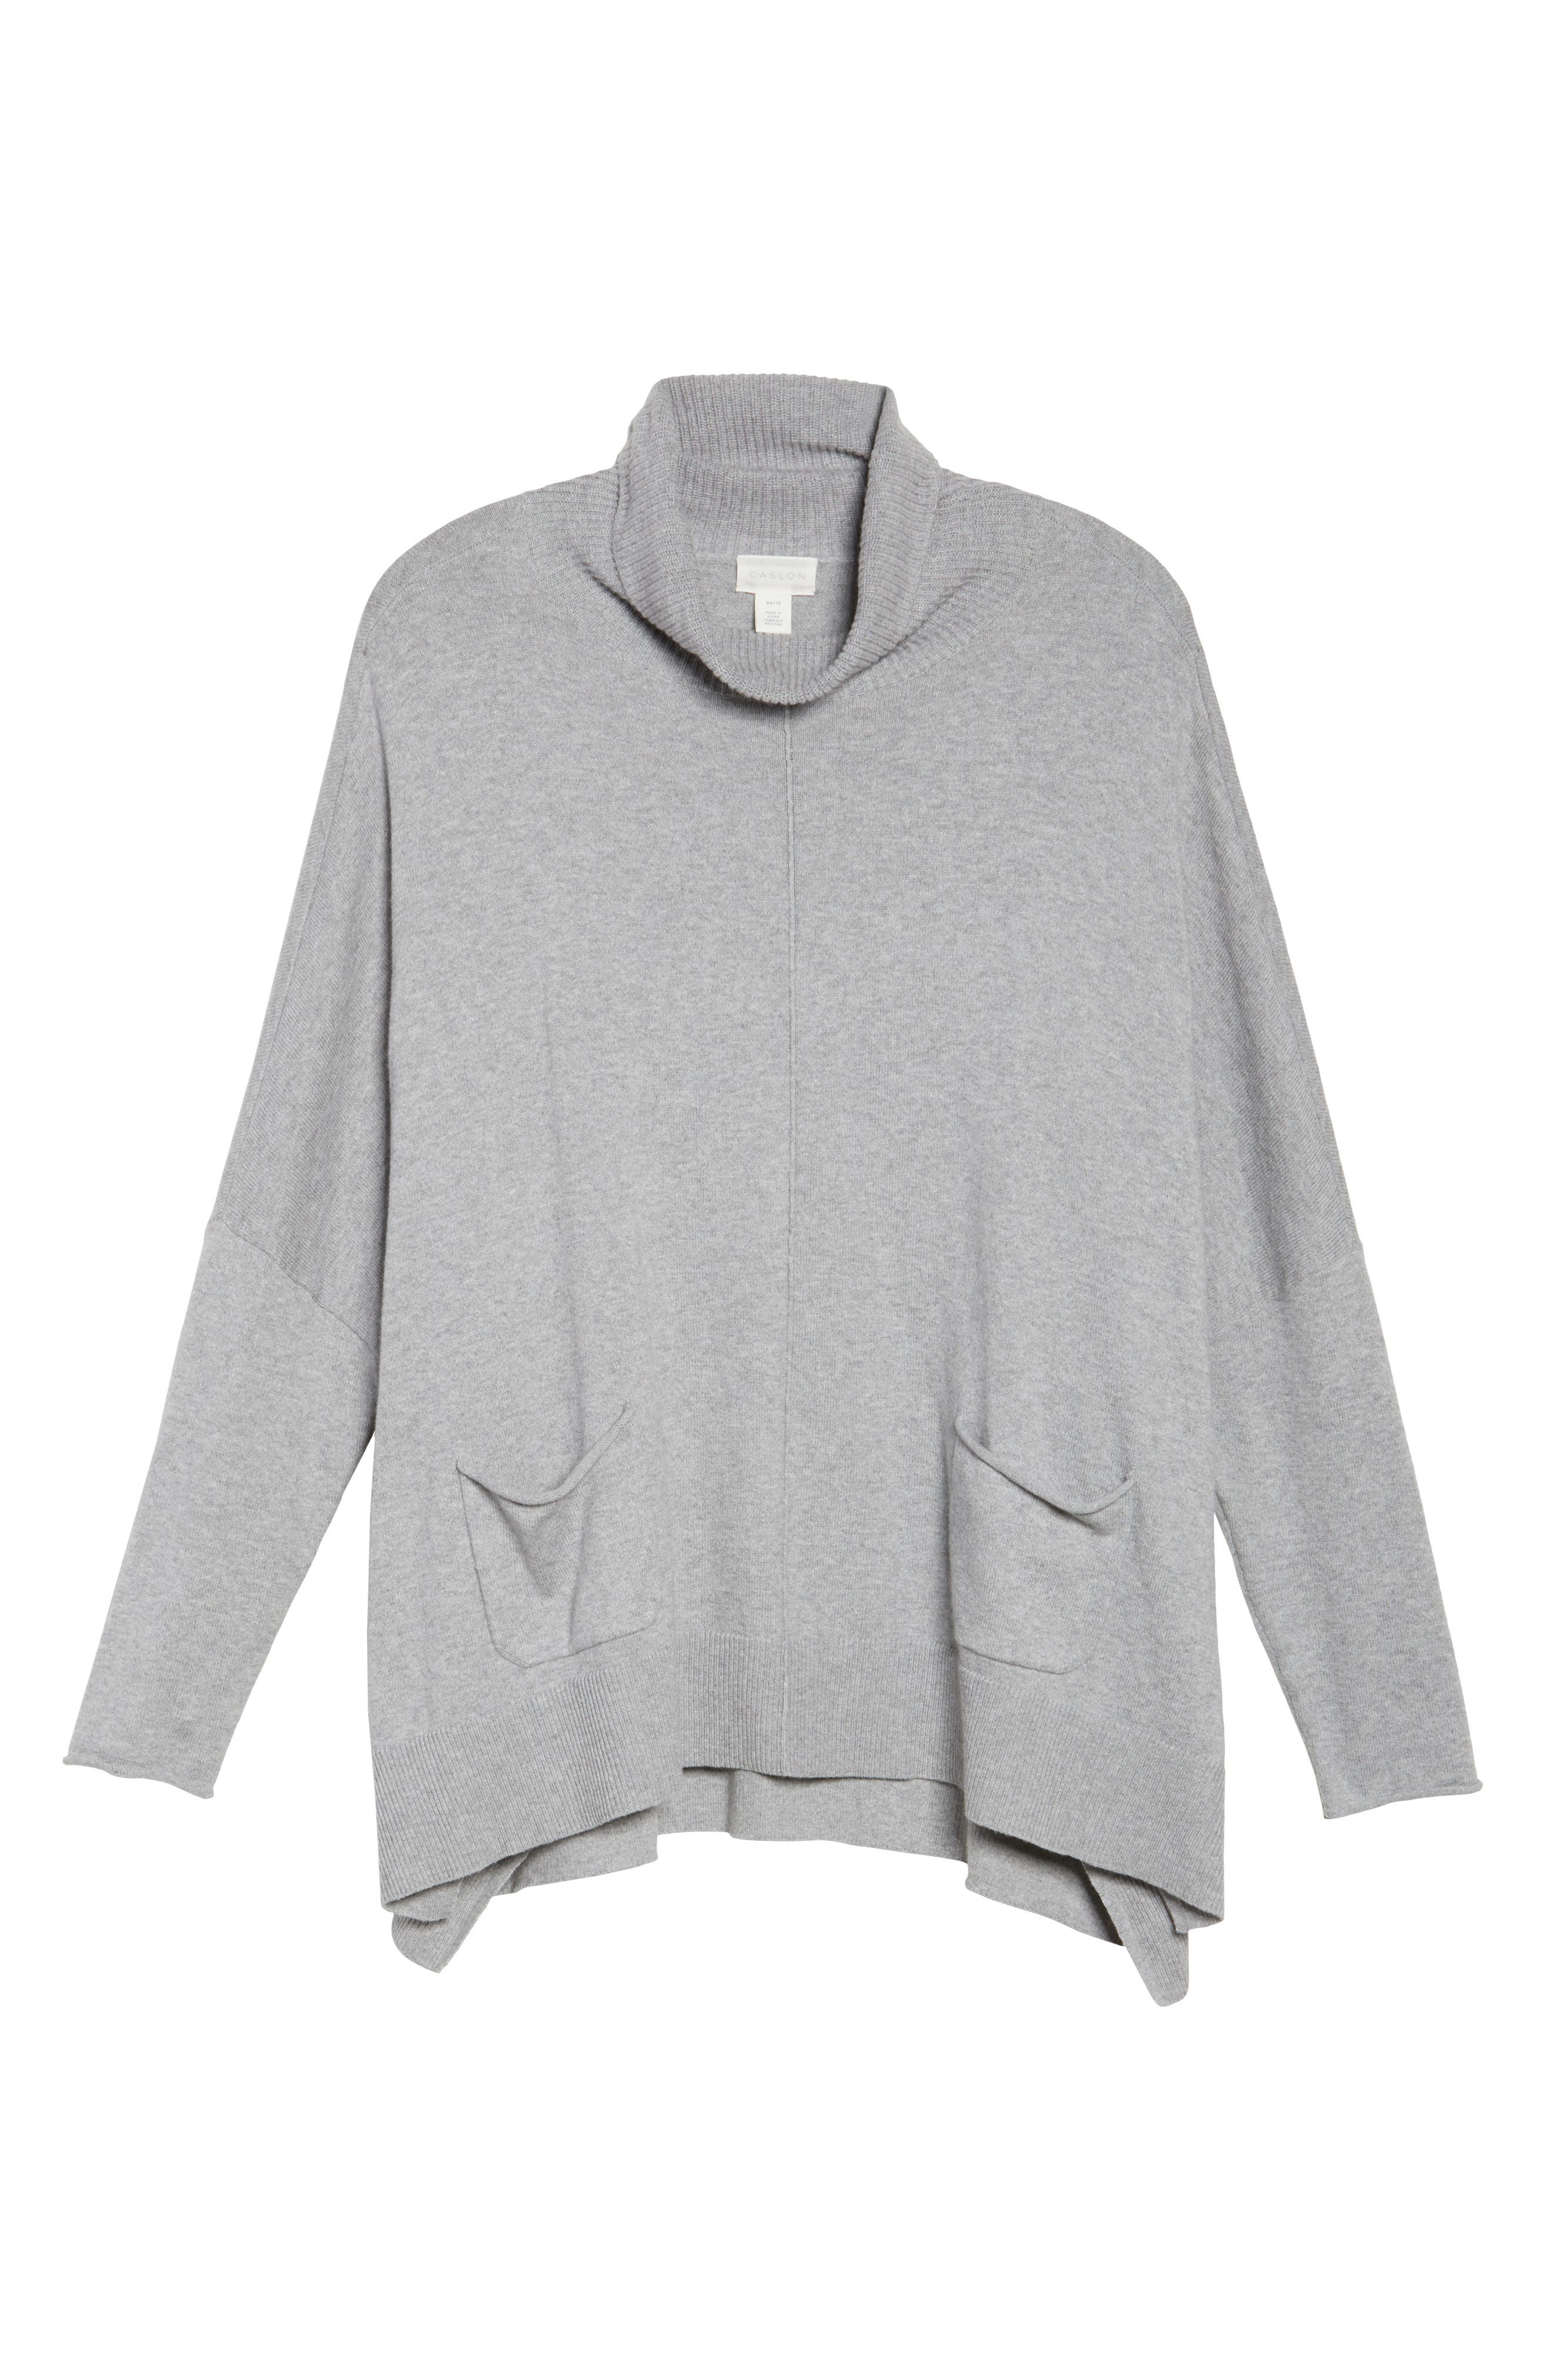 Relaxed Cotton & Cashmere Sweater,                             Alternate thumbnail 6, color,                             Grey Heather